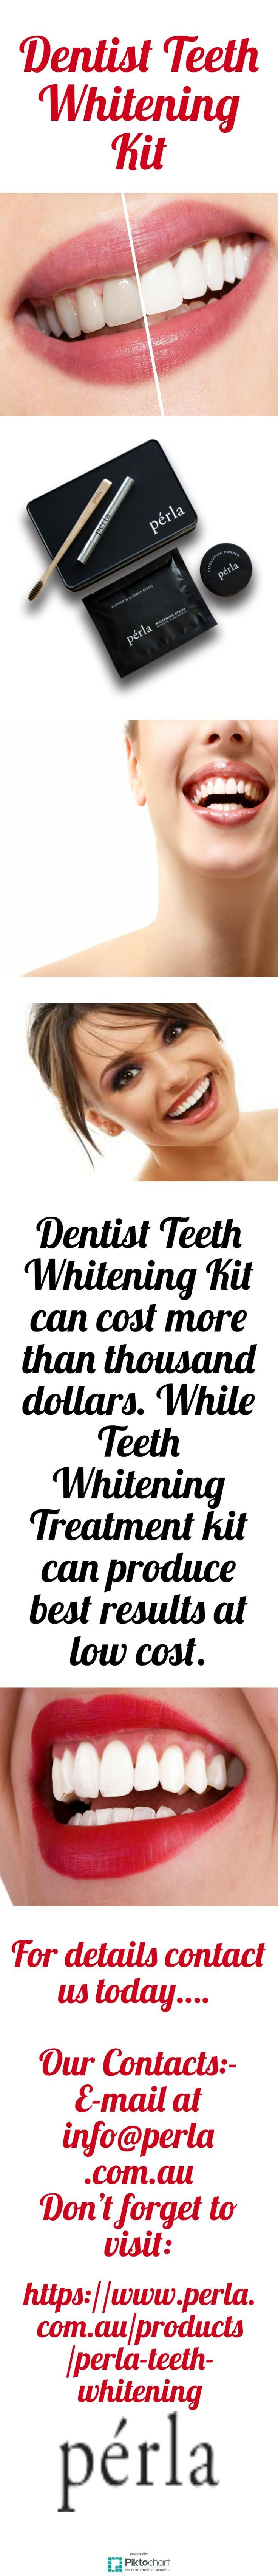 Dentist Teeth Whitening Kit can cost more than thousand dollars. While Teeth Whi